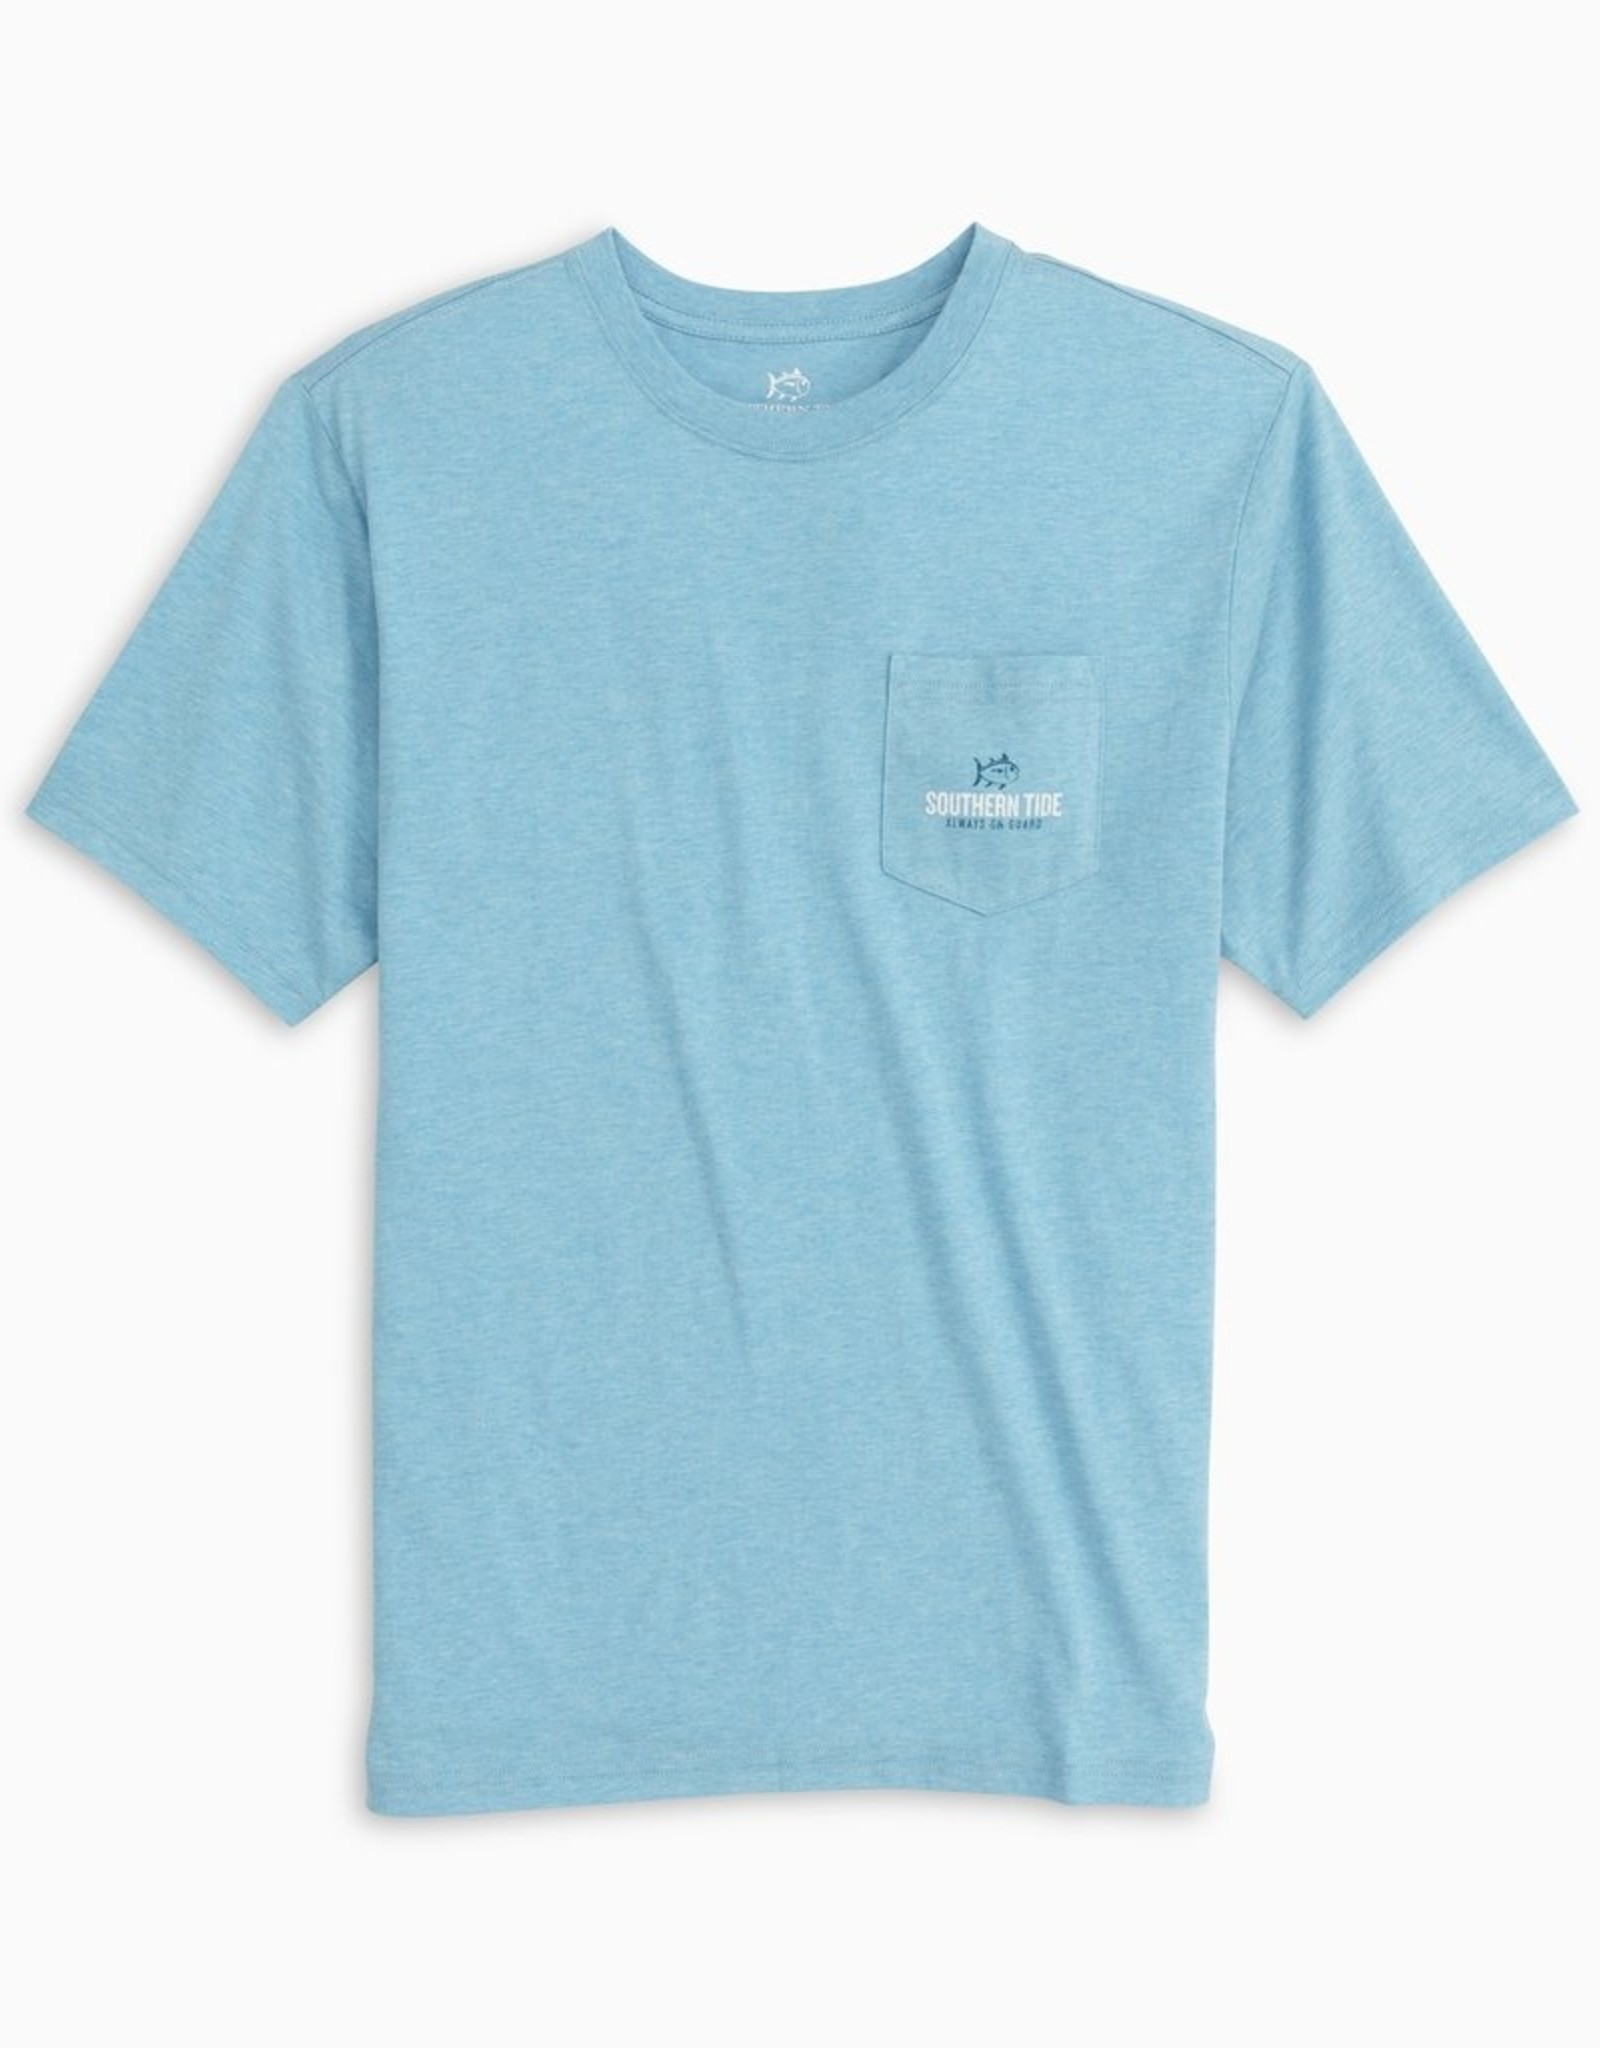 Southern Tide Always on Guard Heather Tee